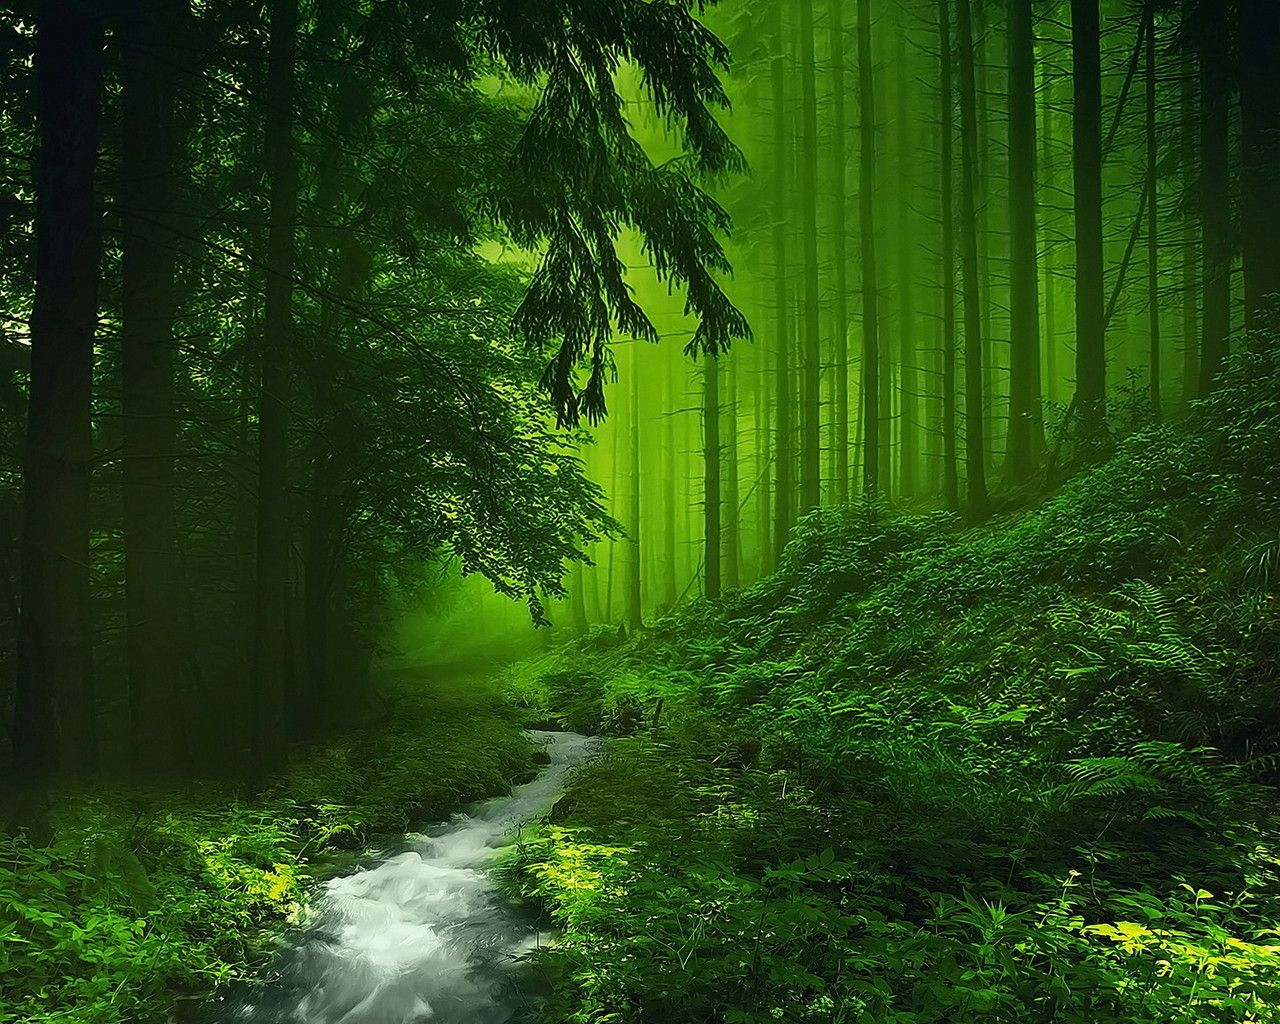 wallpaper download 1280x1024 a clear river in the green forest